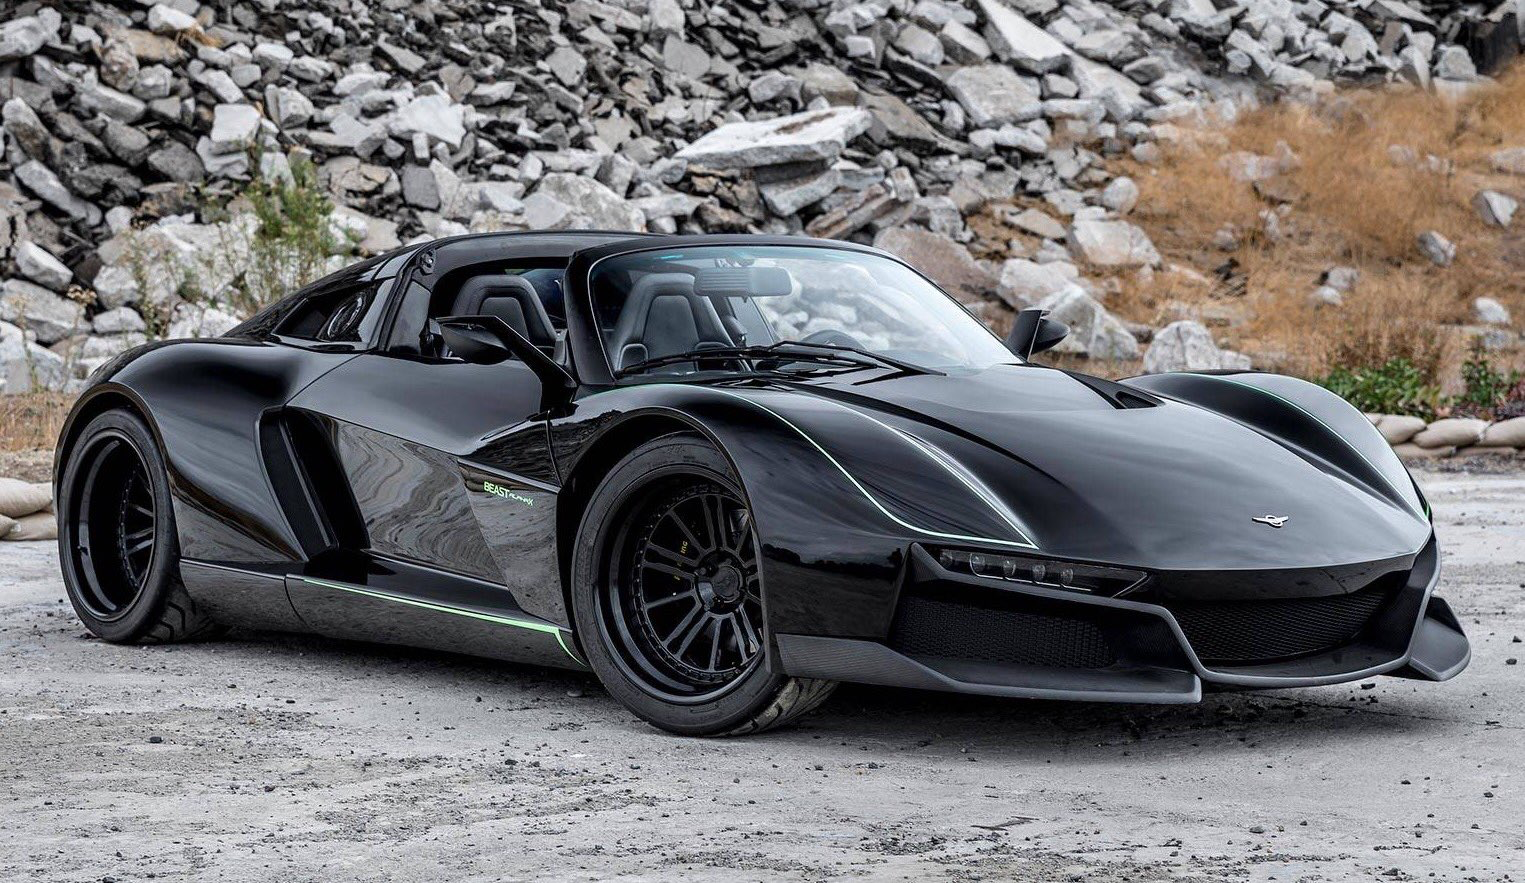 700hp Rezvani Beast Alpha X Blackbird Has Officially Landed 225k